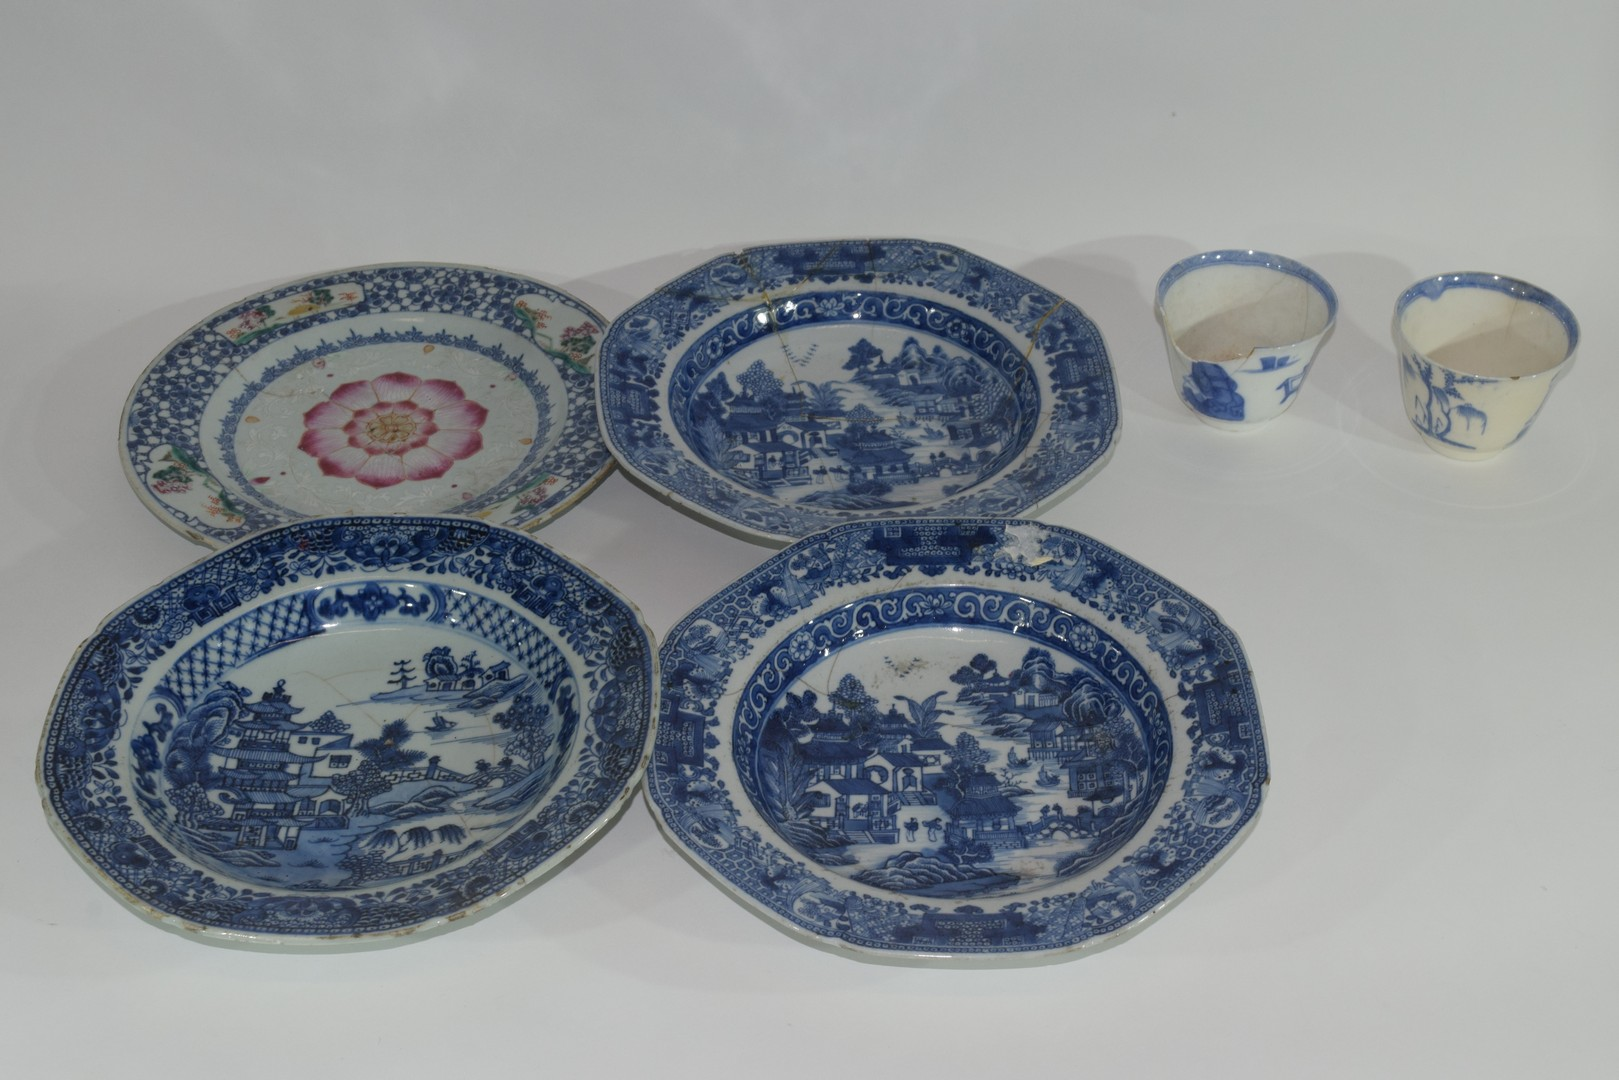 Group of Chinese export porcelain plates